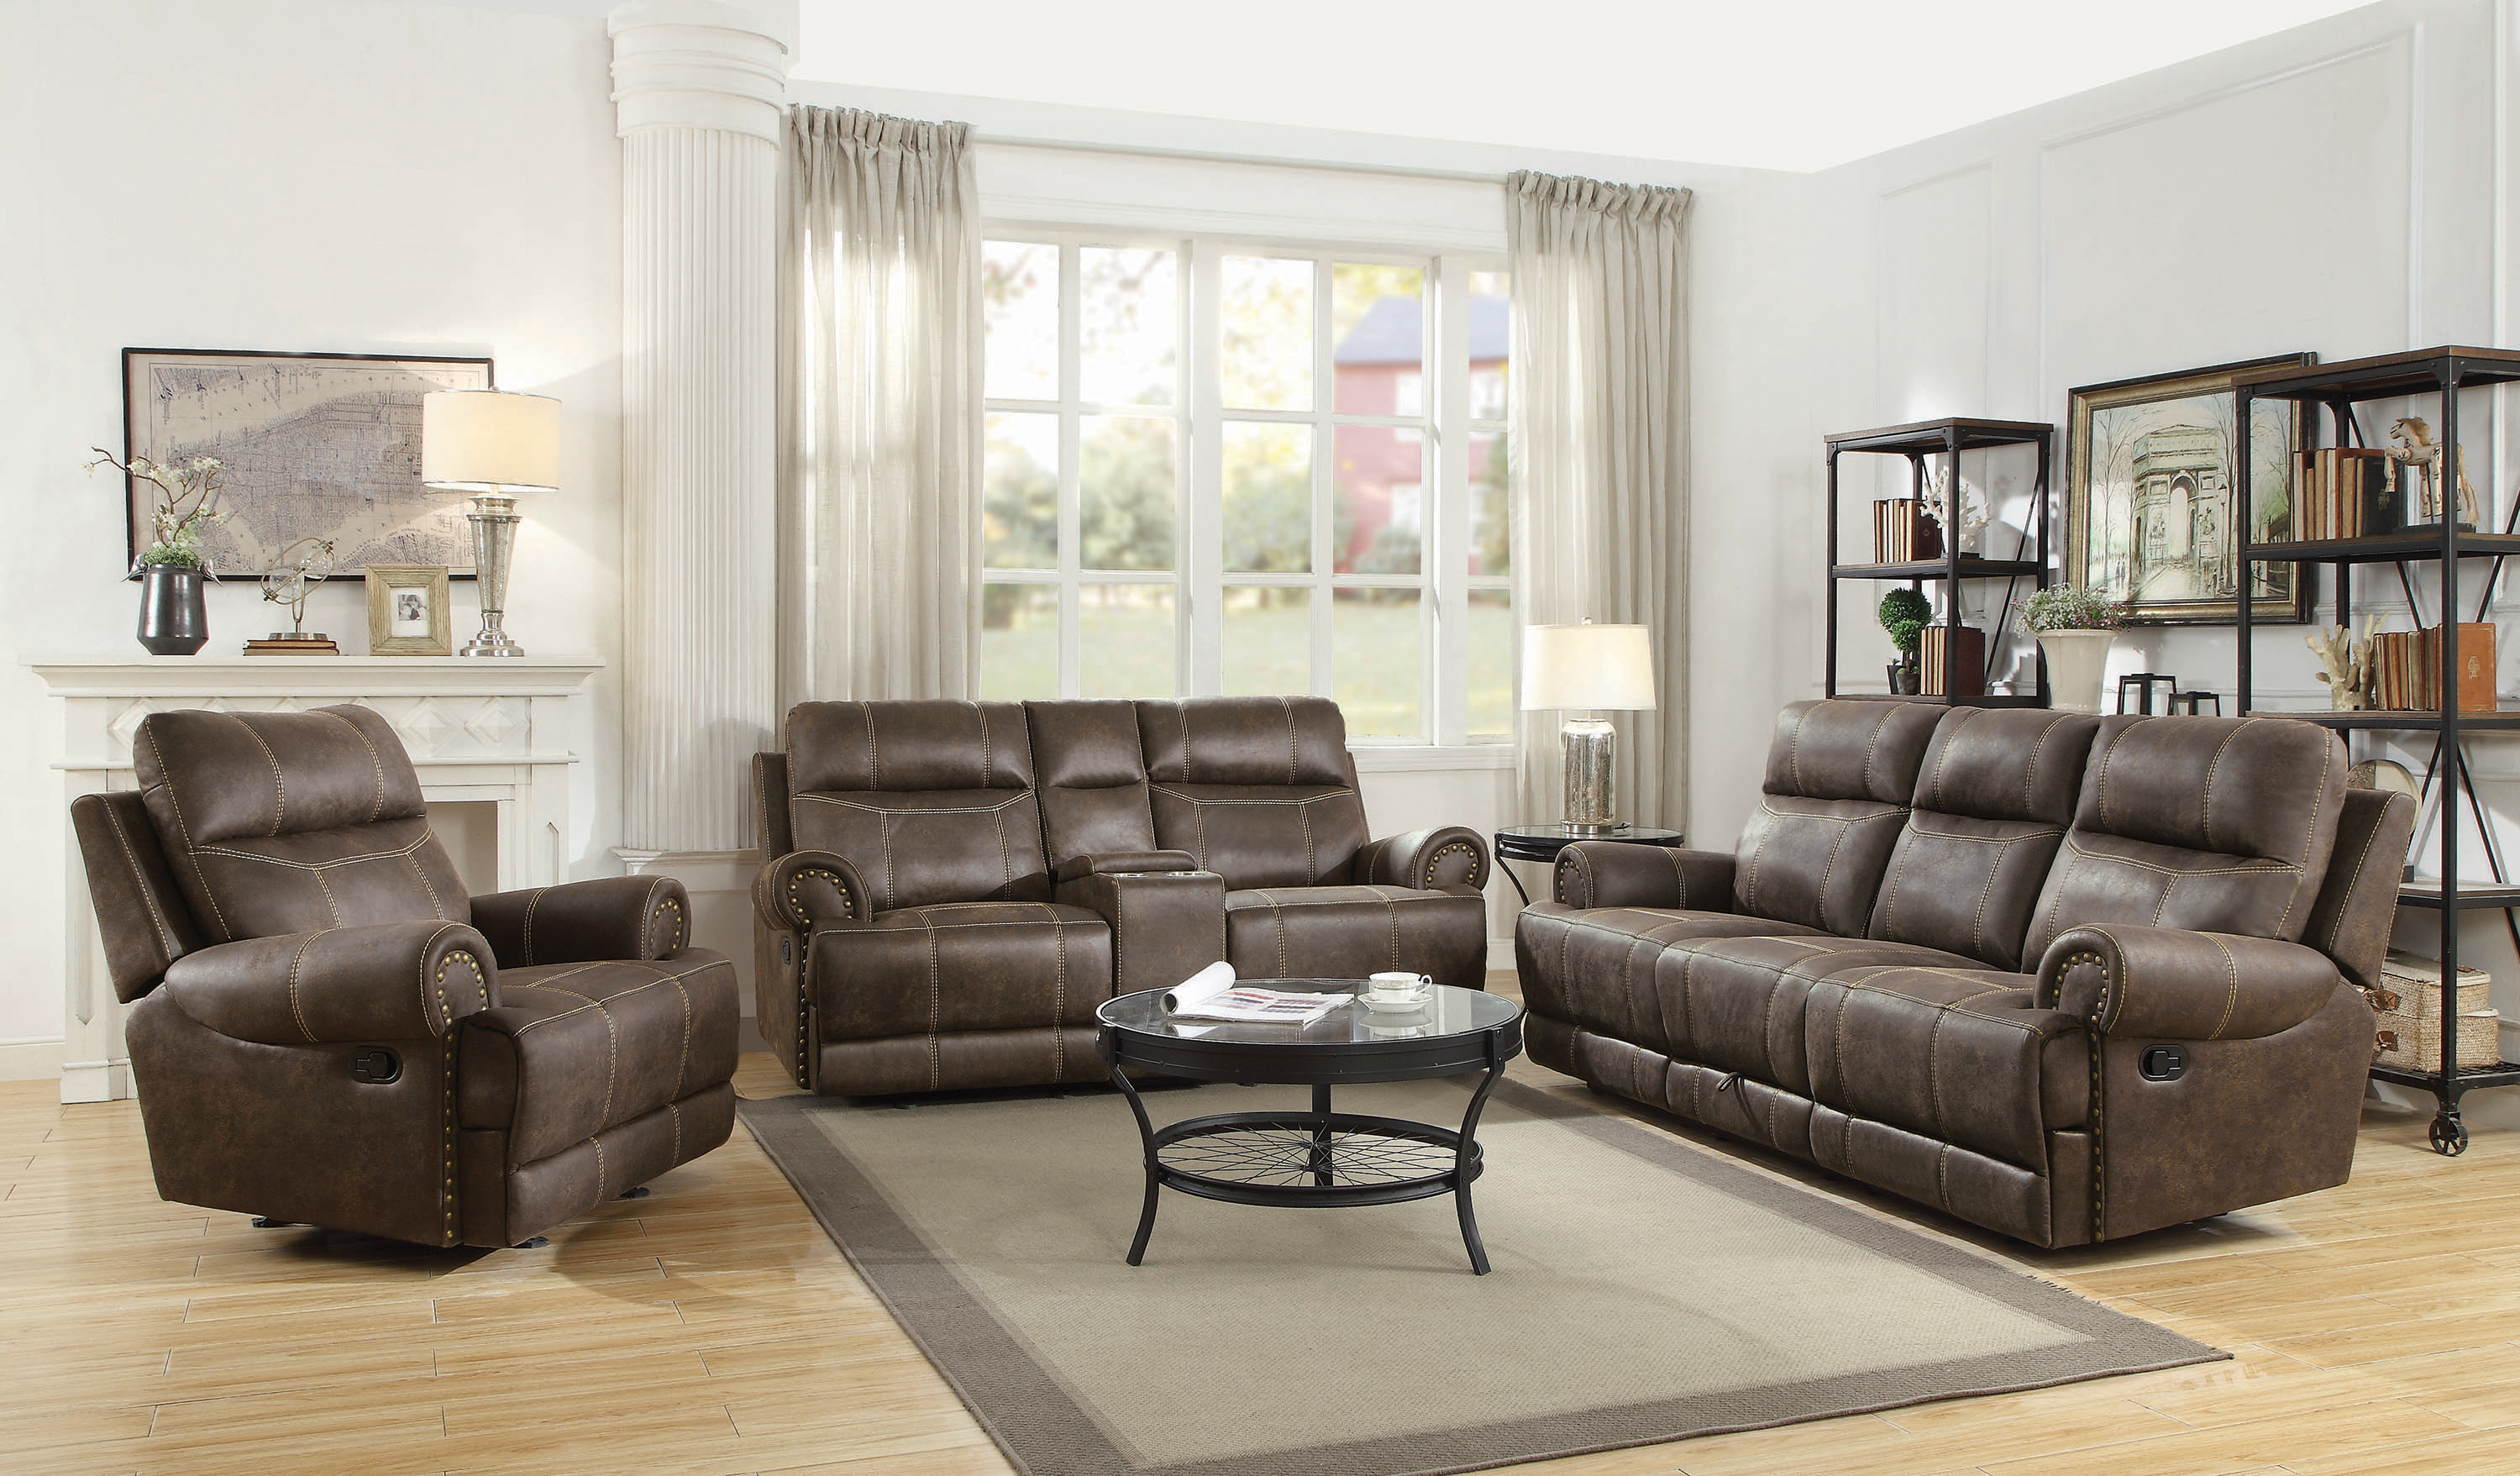 Brixton Upholstered Motion Sofa With Cup Holders Buckskin Br